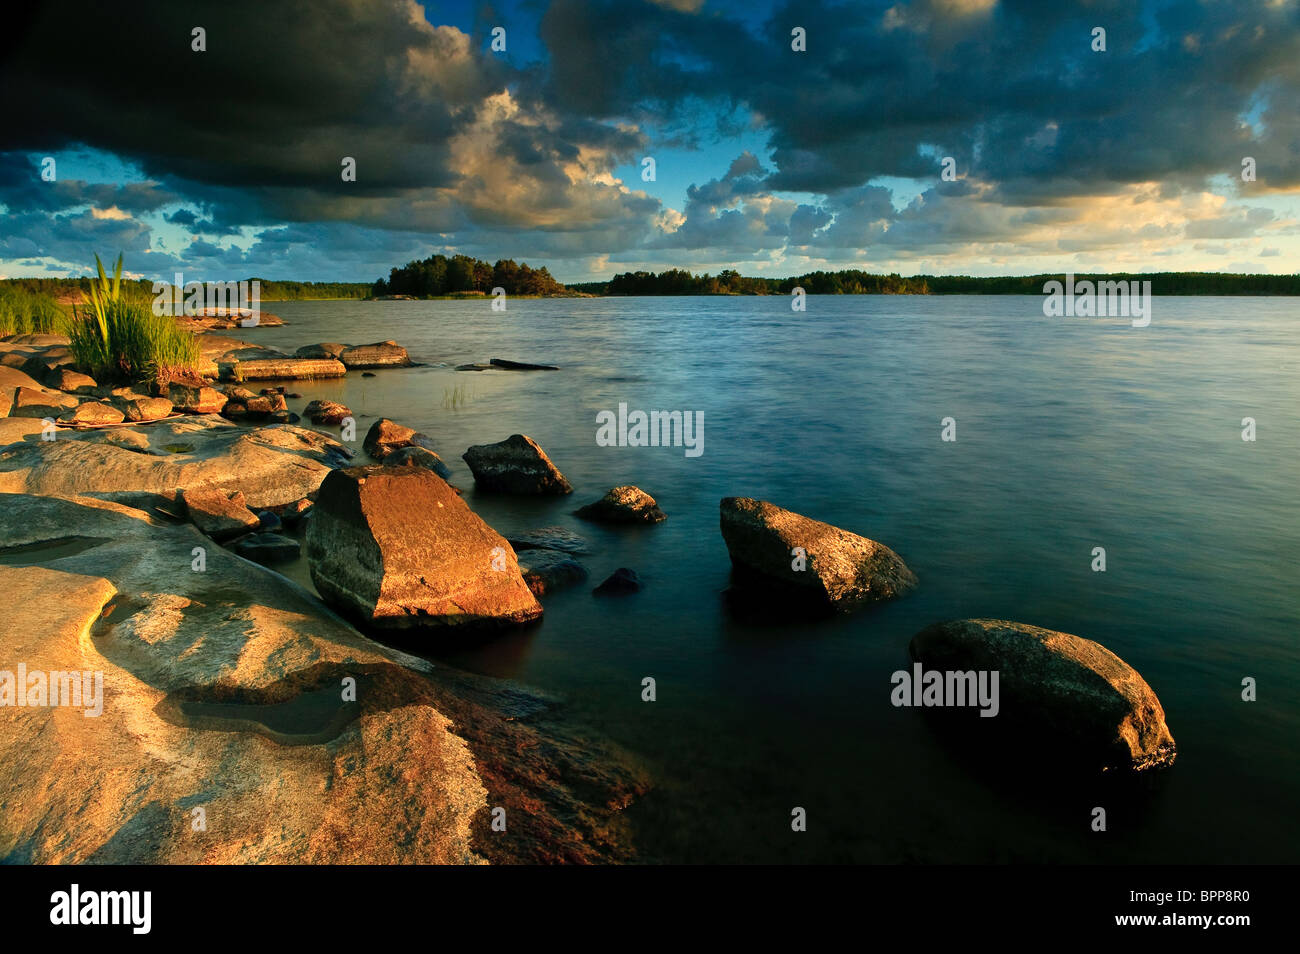 Summer evening light at the lakeshore of the small island Brattholmen in the lake Vansjø, Råde kommune, - Stock Image